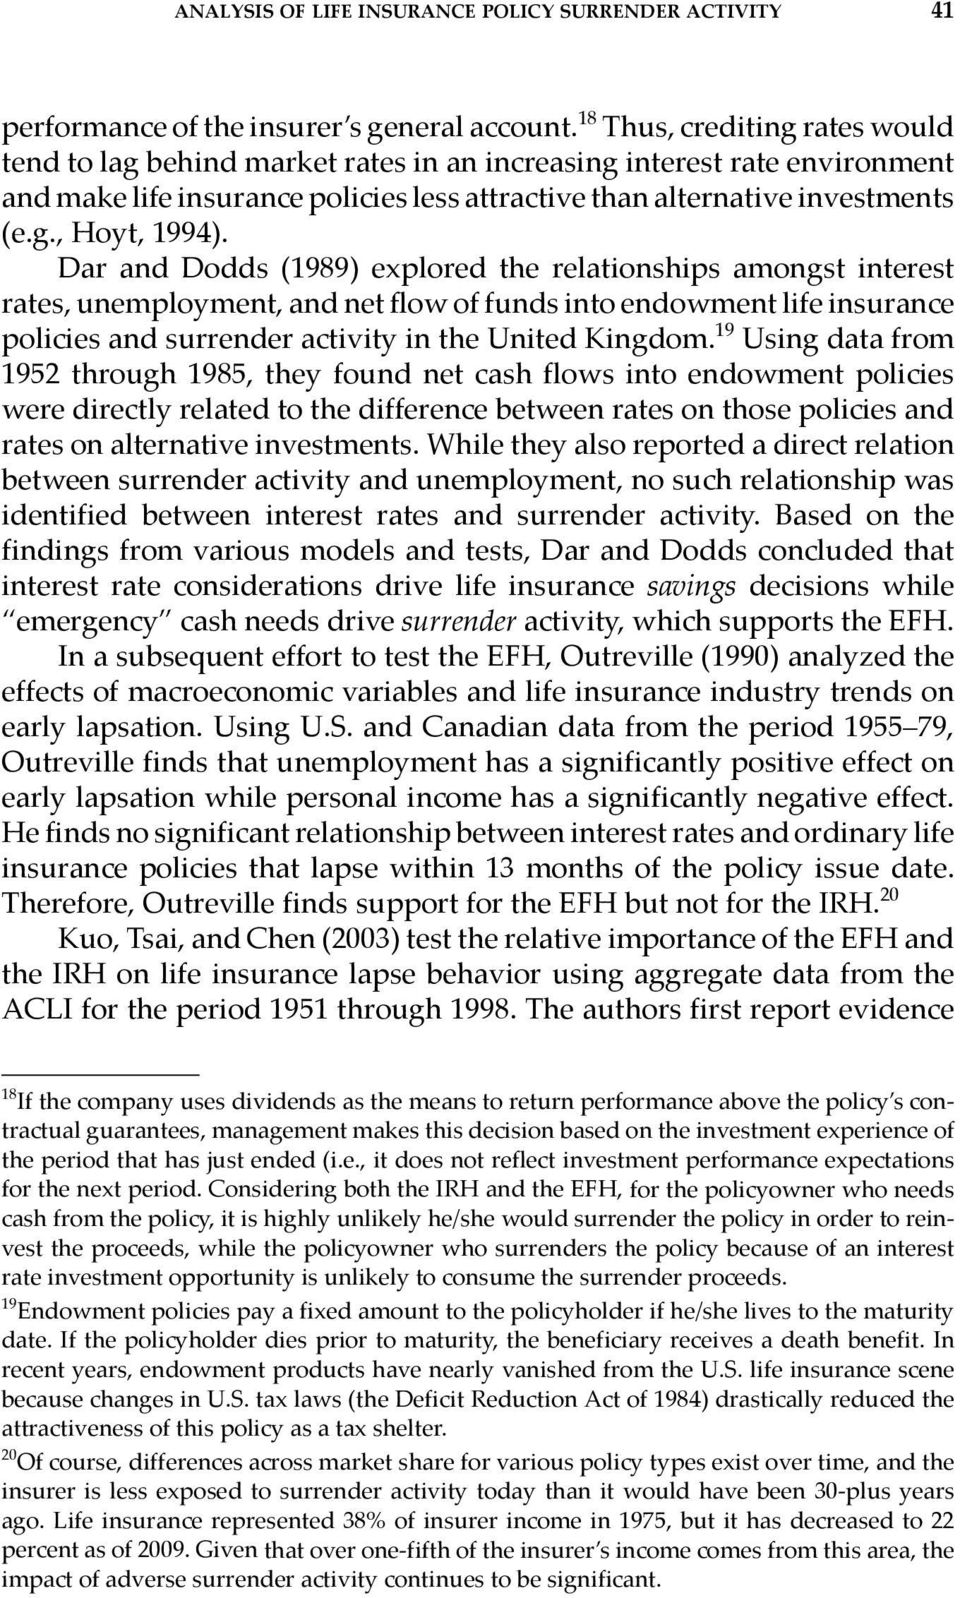 Dar and Dodds (1989) explored the relationships amongst interest rates, unemployment, and net flow of funds into endowment life insurance policies and surrender activity in the United Kingdom.